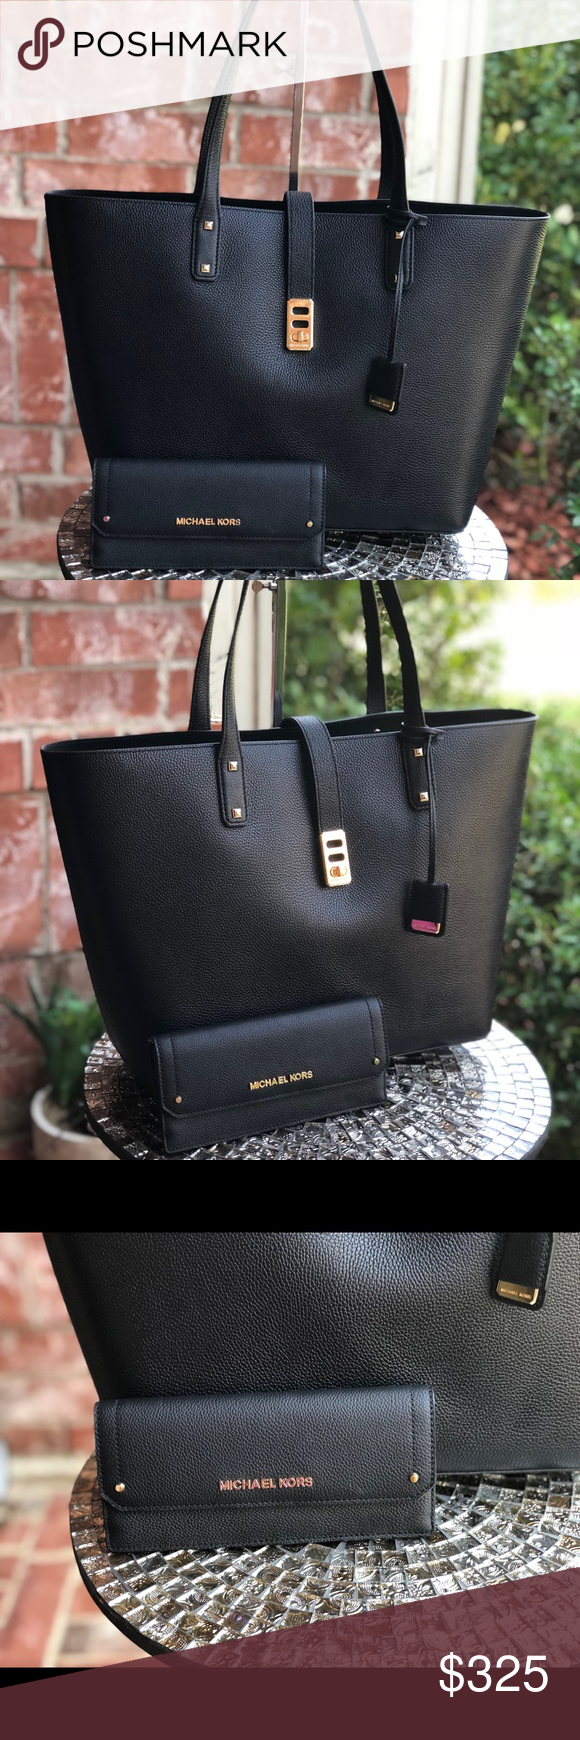 673465aed5eb Michael kors Karson large tote bag with wallet set MICHAEL KORS KARSON  LARGE TOTE CARRYALL LEATHER BAG $398 Style: 35T8GKRT3L Pebbled leather,  open top with ...